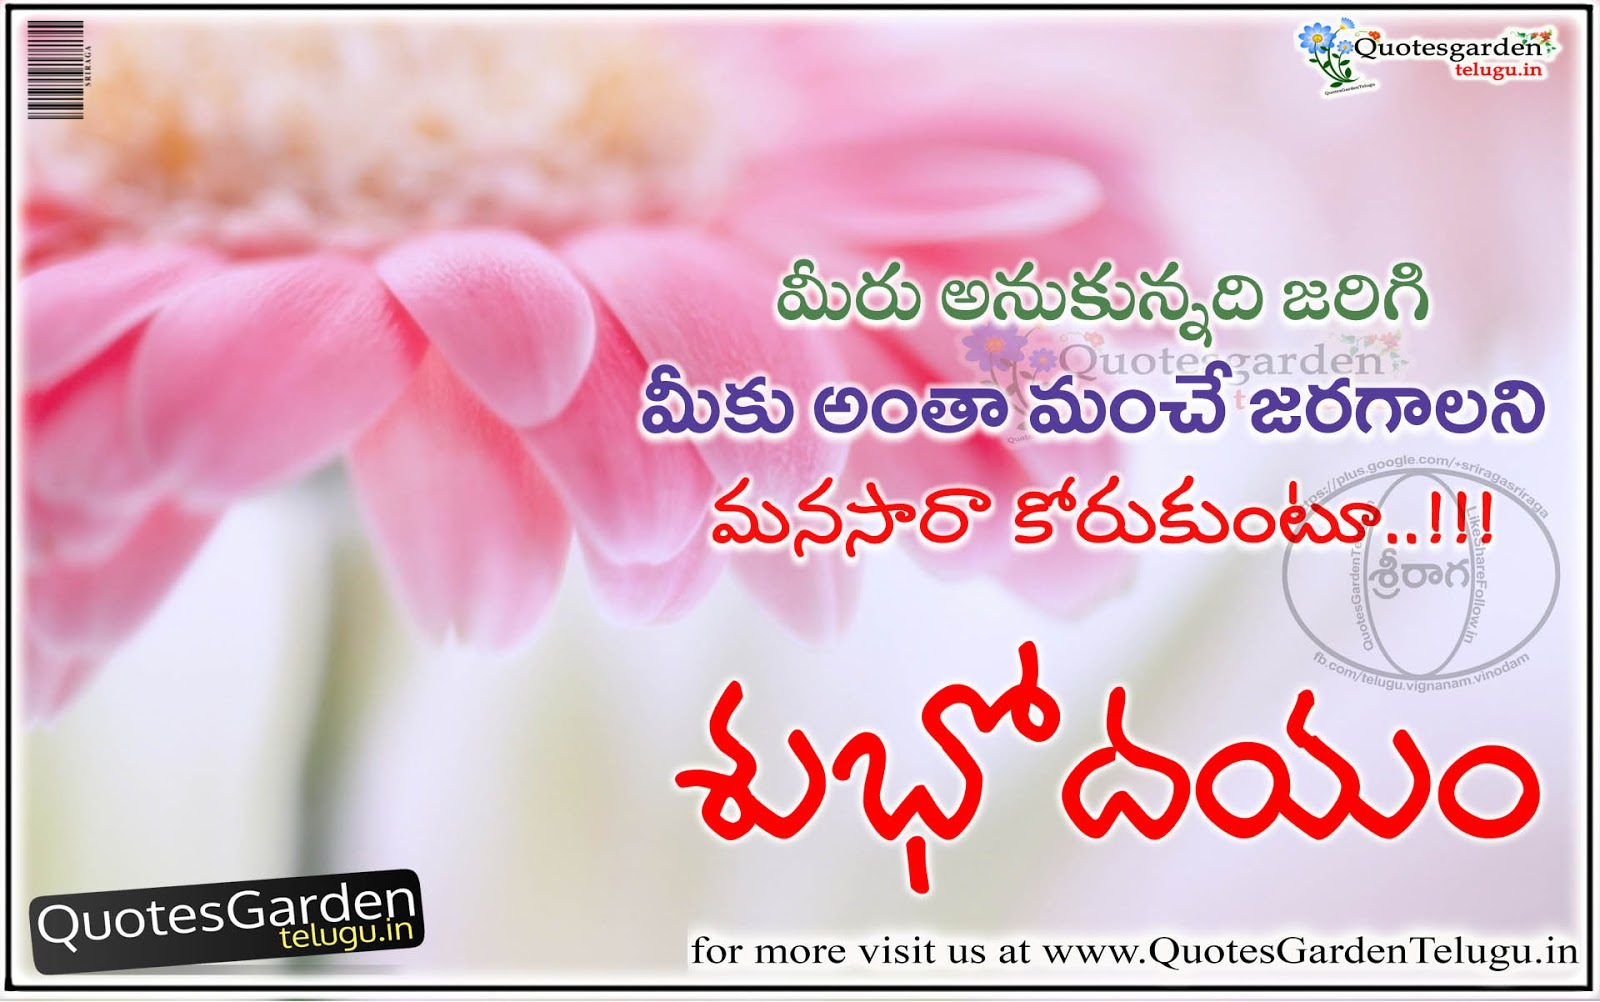 Best Good Morning Quotes In Telugu Quotes Garden Telugu Telugu Quotes English Quotes Hindi Quotes